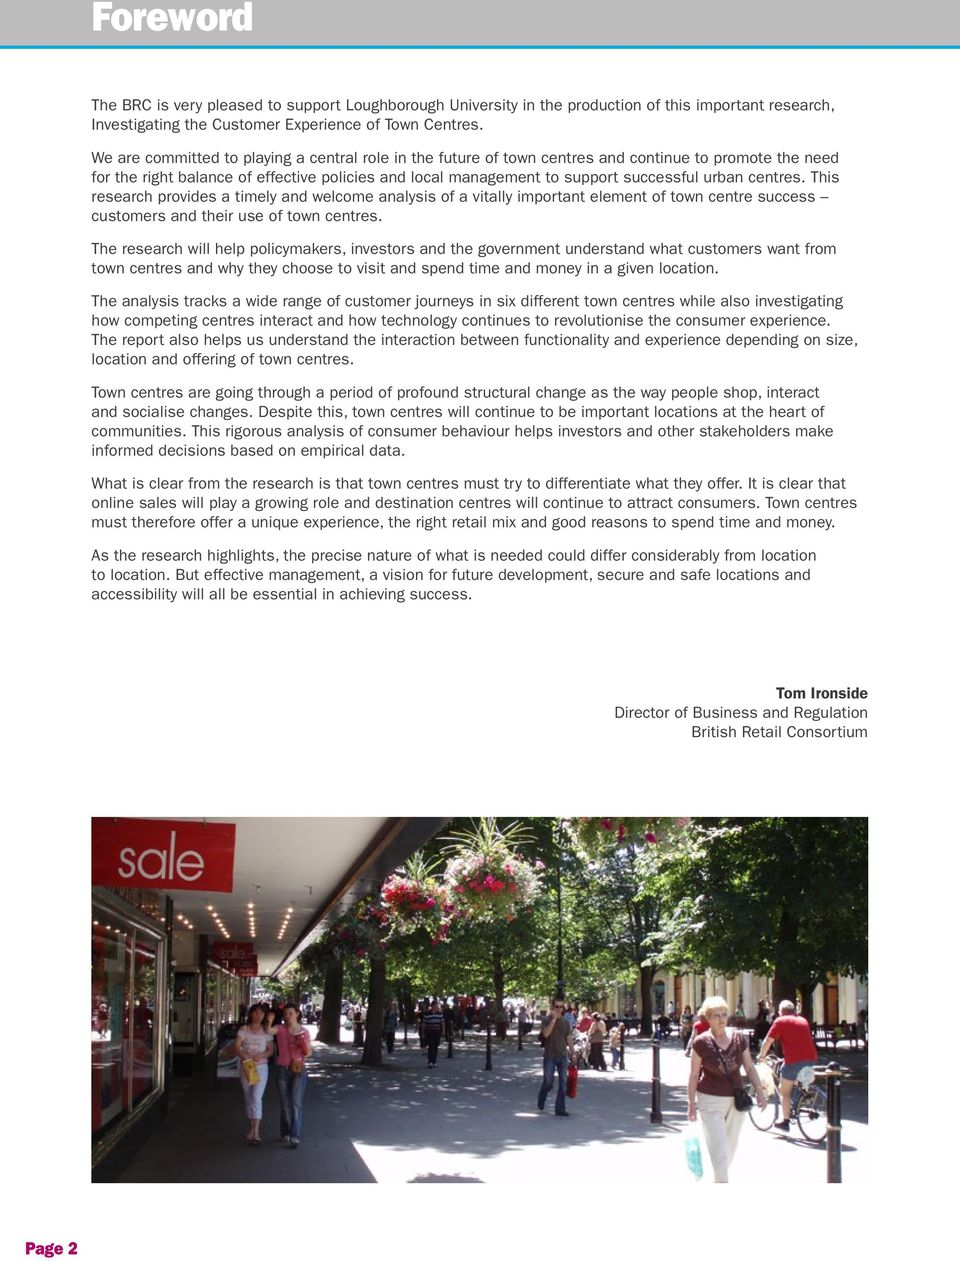 centres. This research provides a timely and welcome analysis of a vitally important element of town centre success customers and their use of town centres.